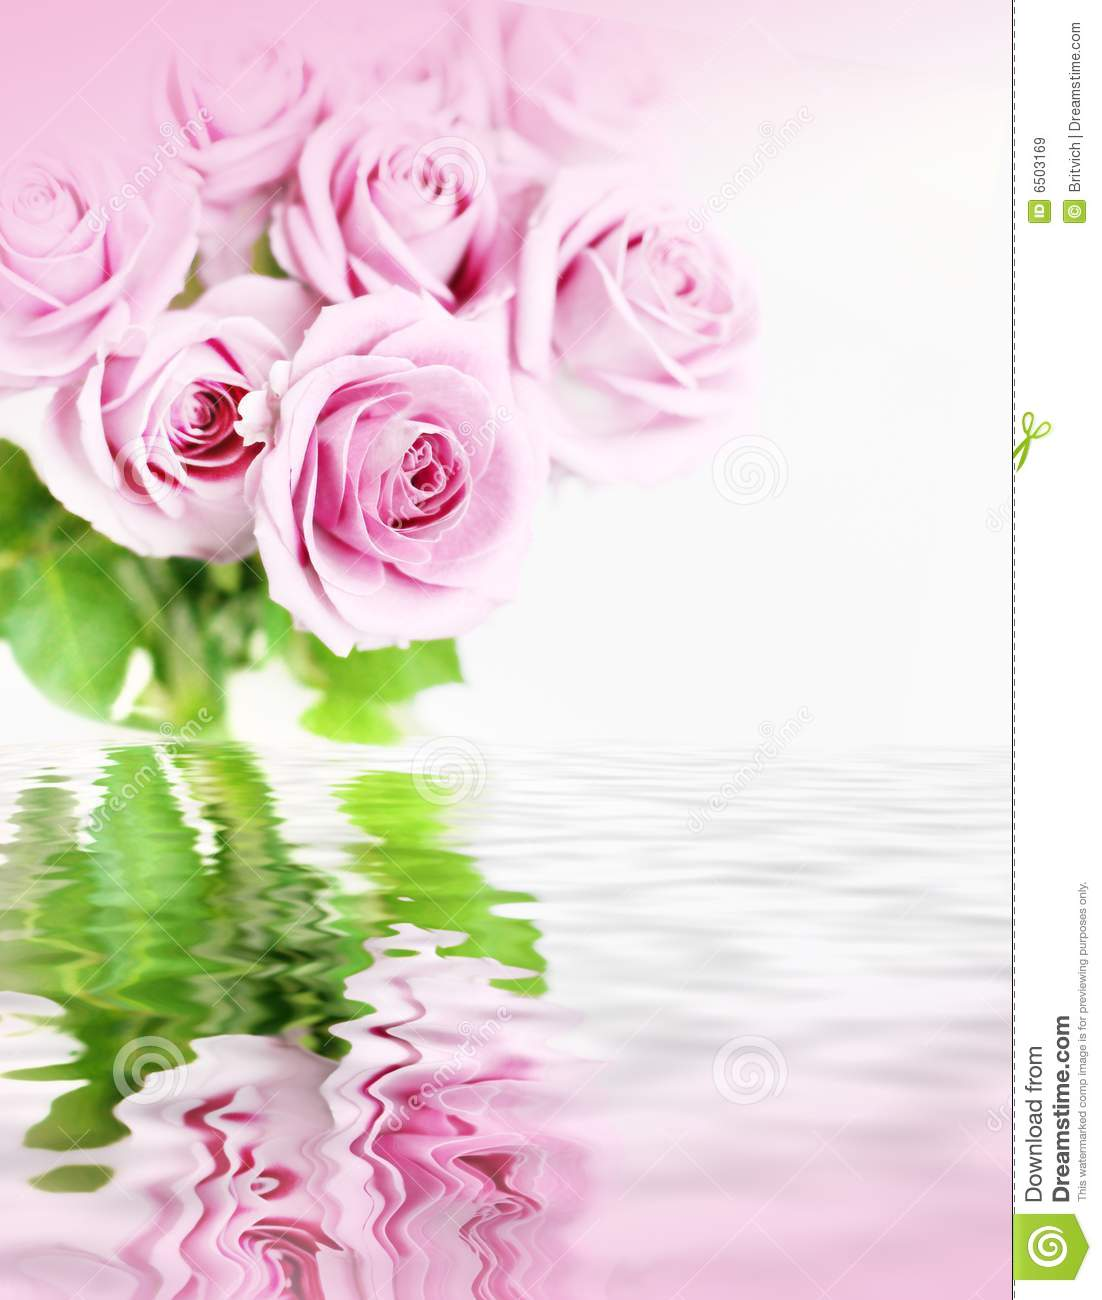 Pink roses in flood